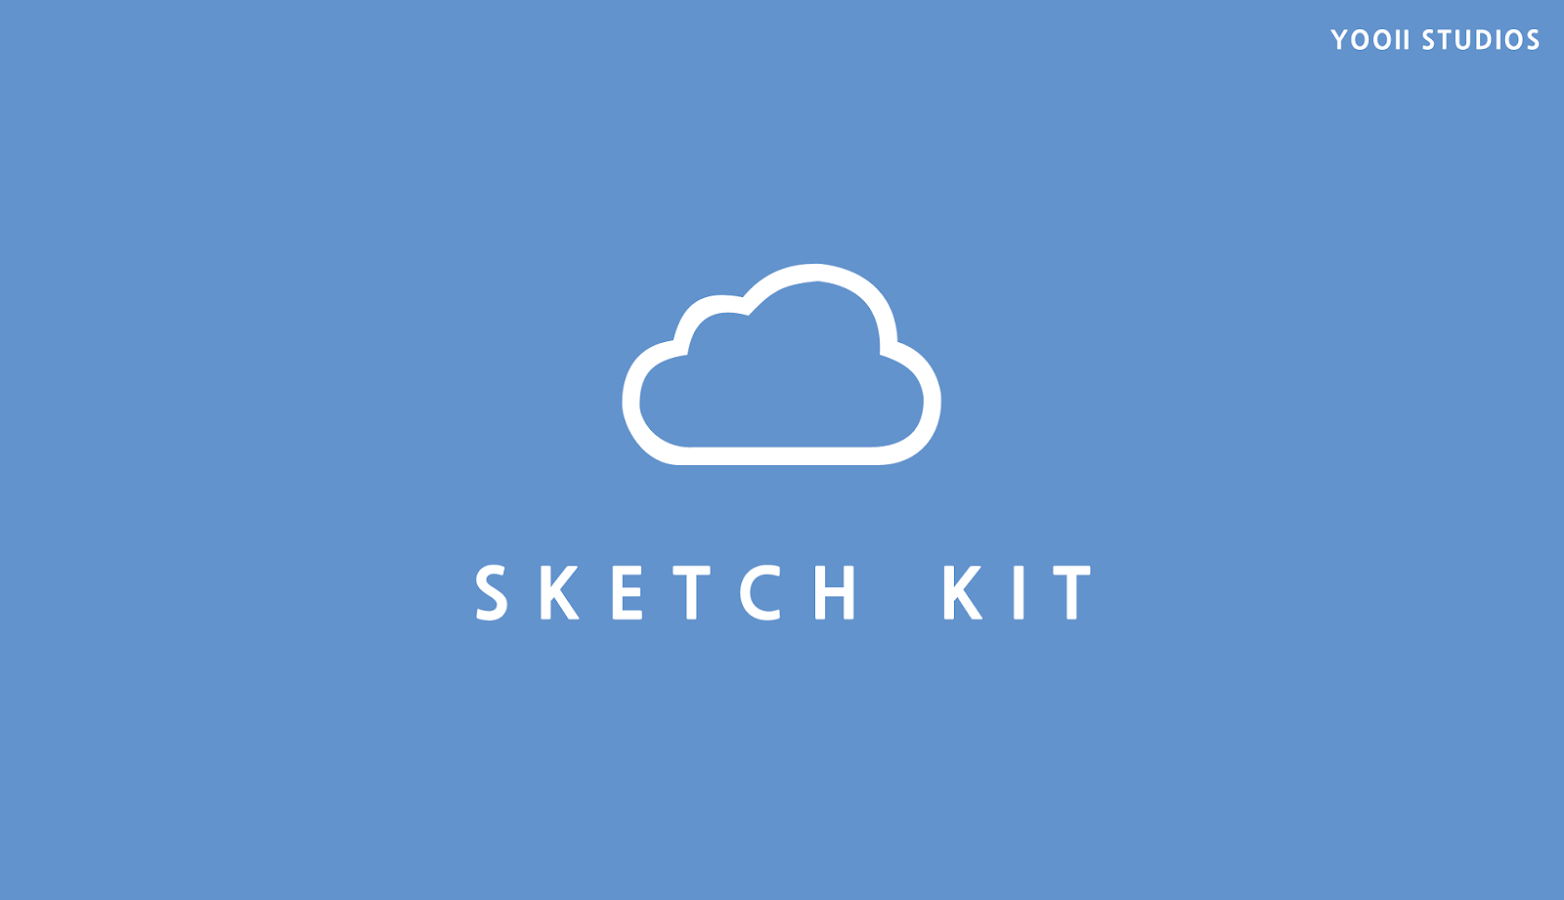 Kit de dibujo - Sketch Kit: captura de pantalla